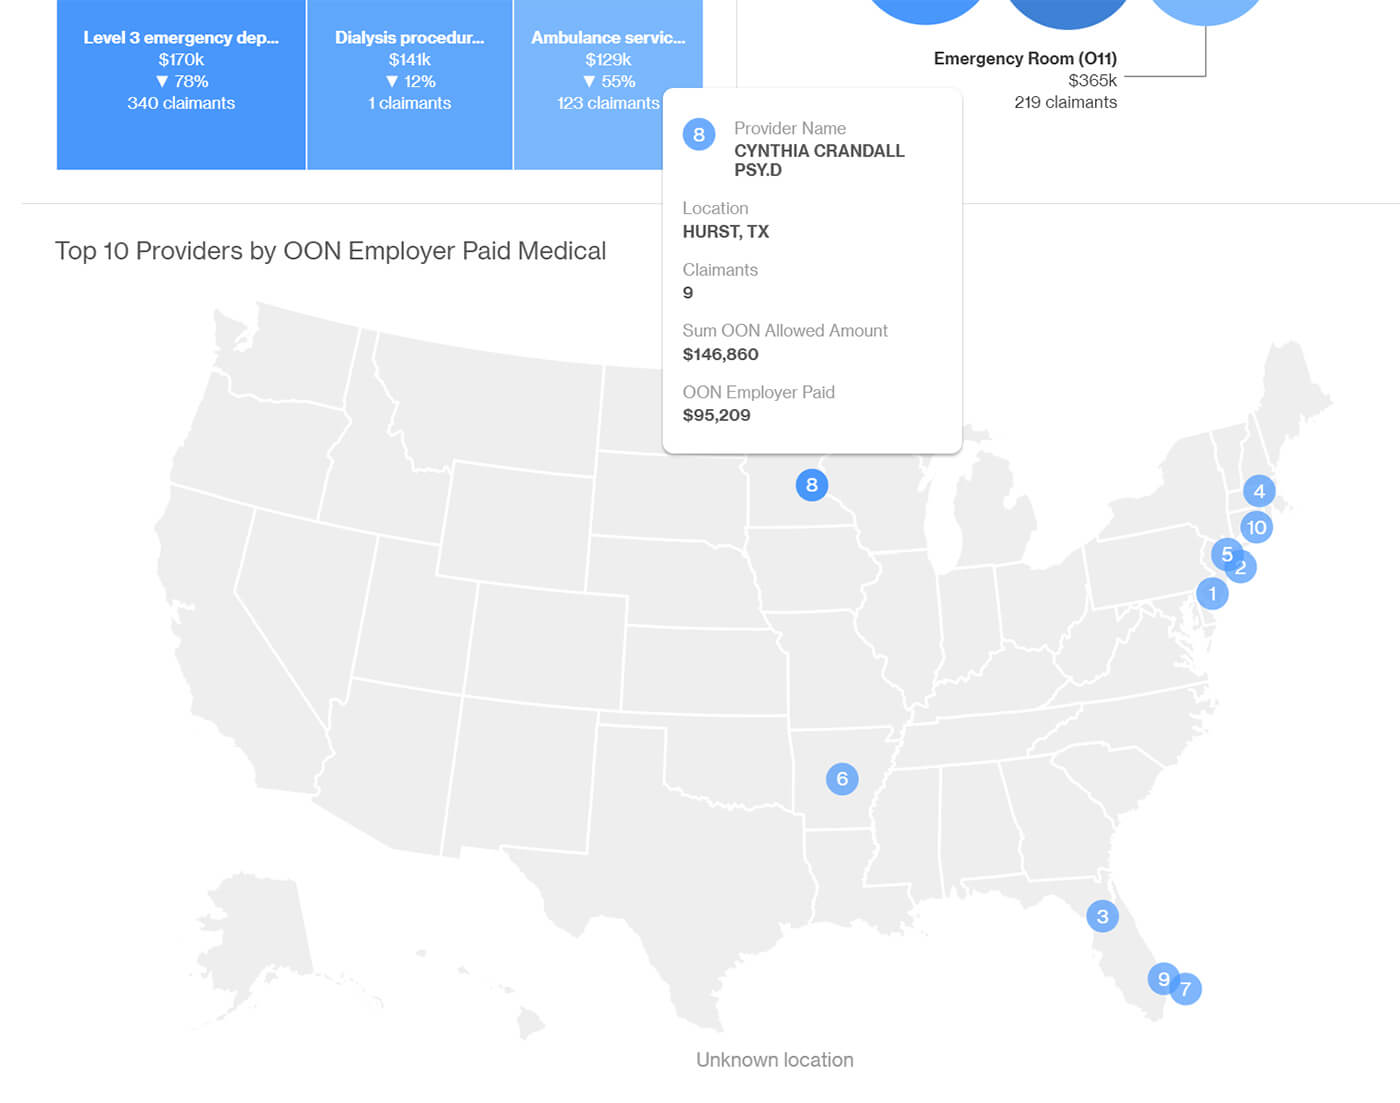 Dashboard showing map of the United States and which providers in which areas are driving out-of-network spending.